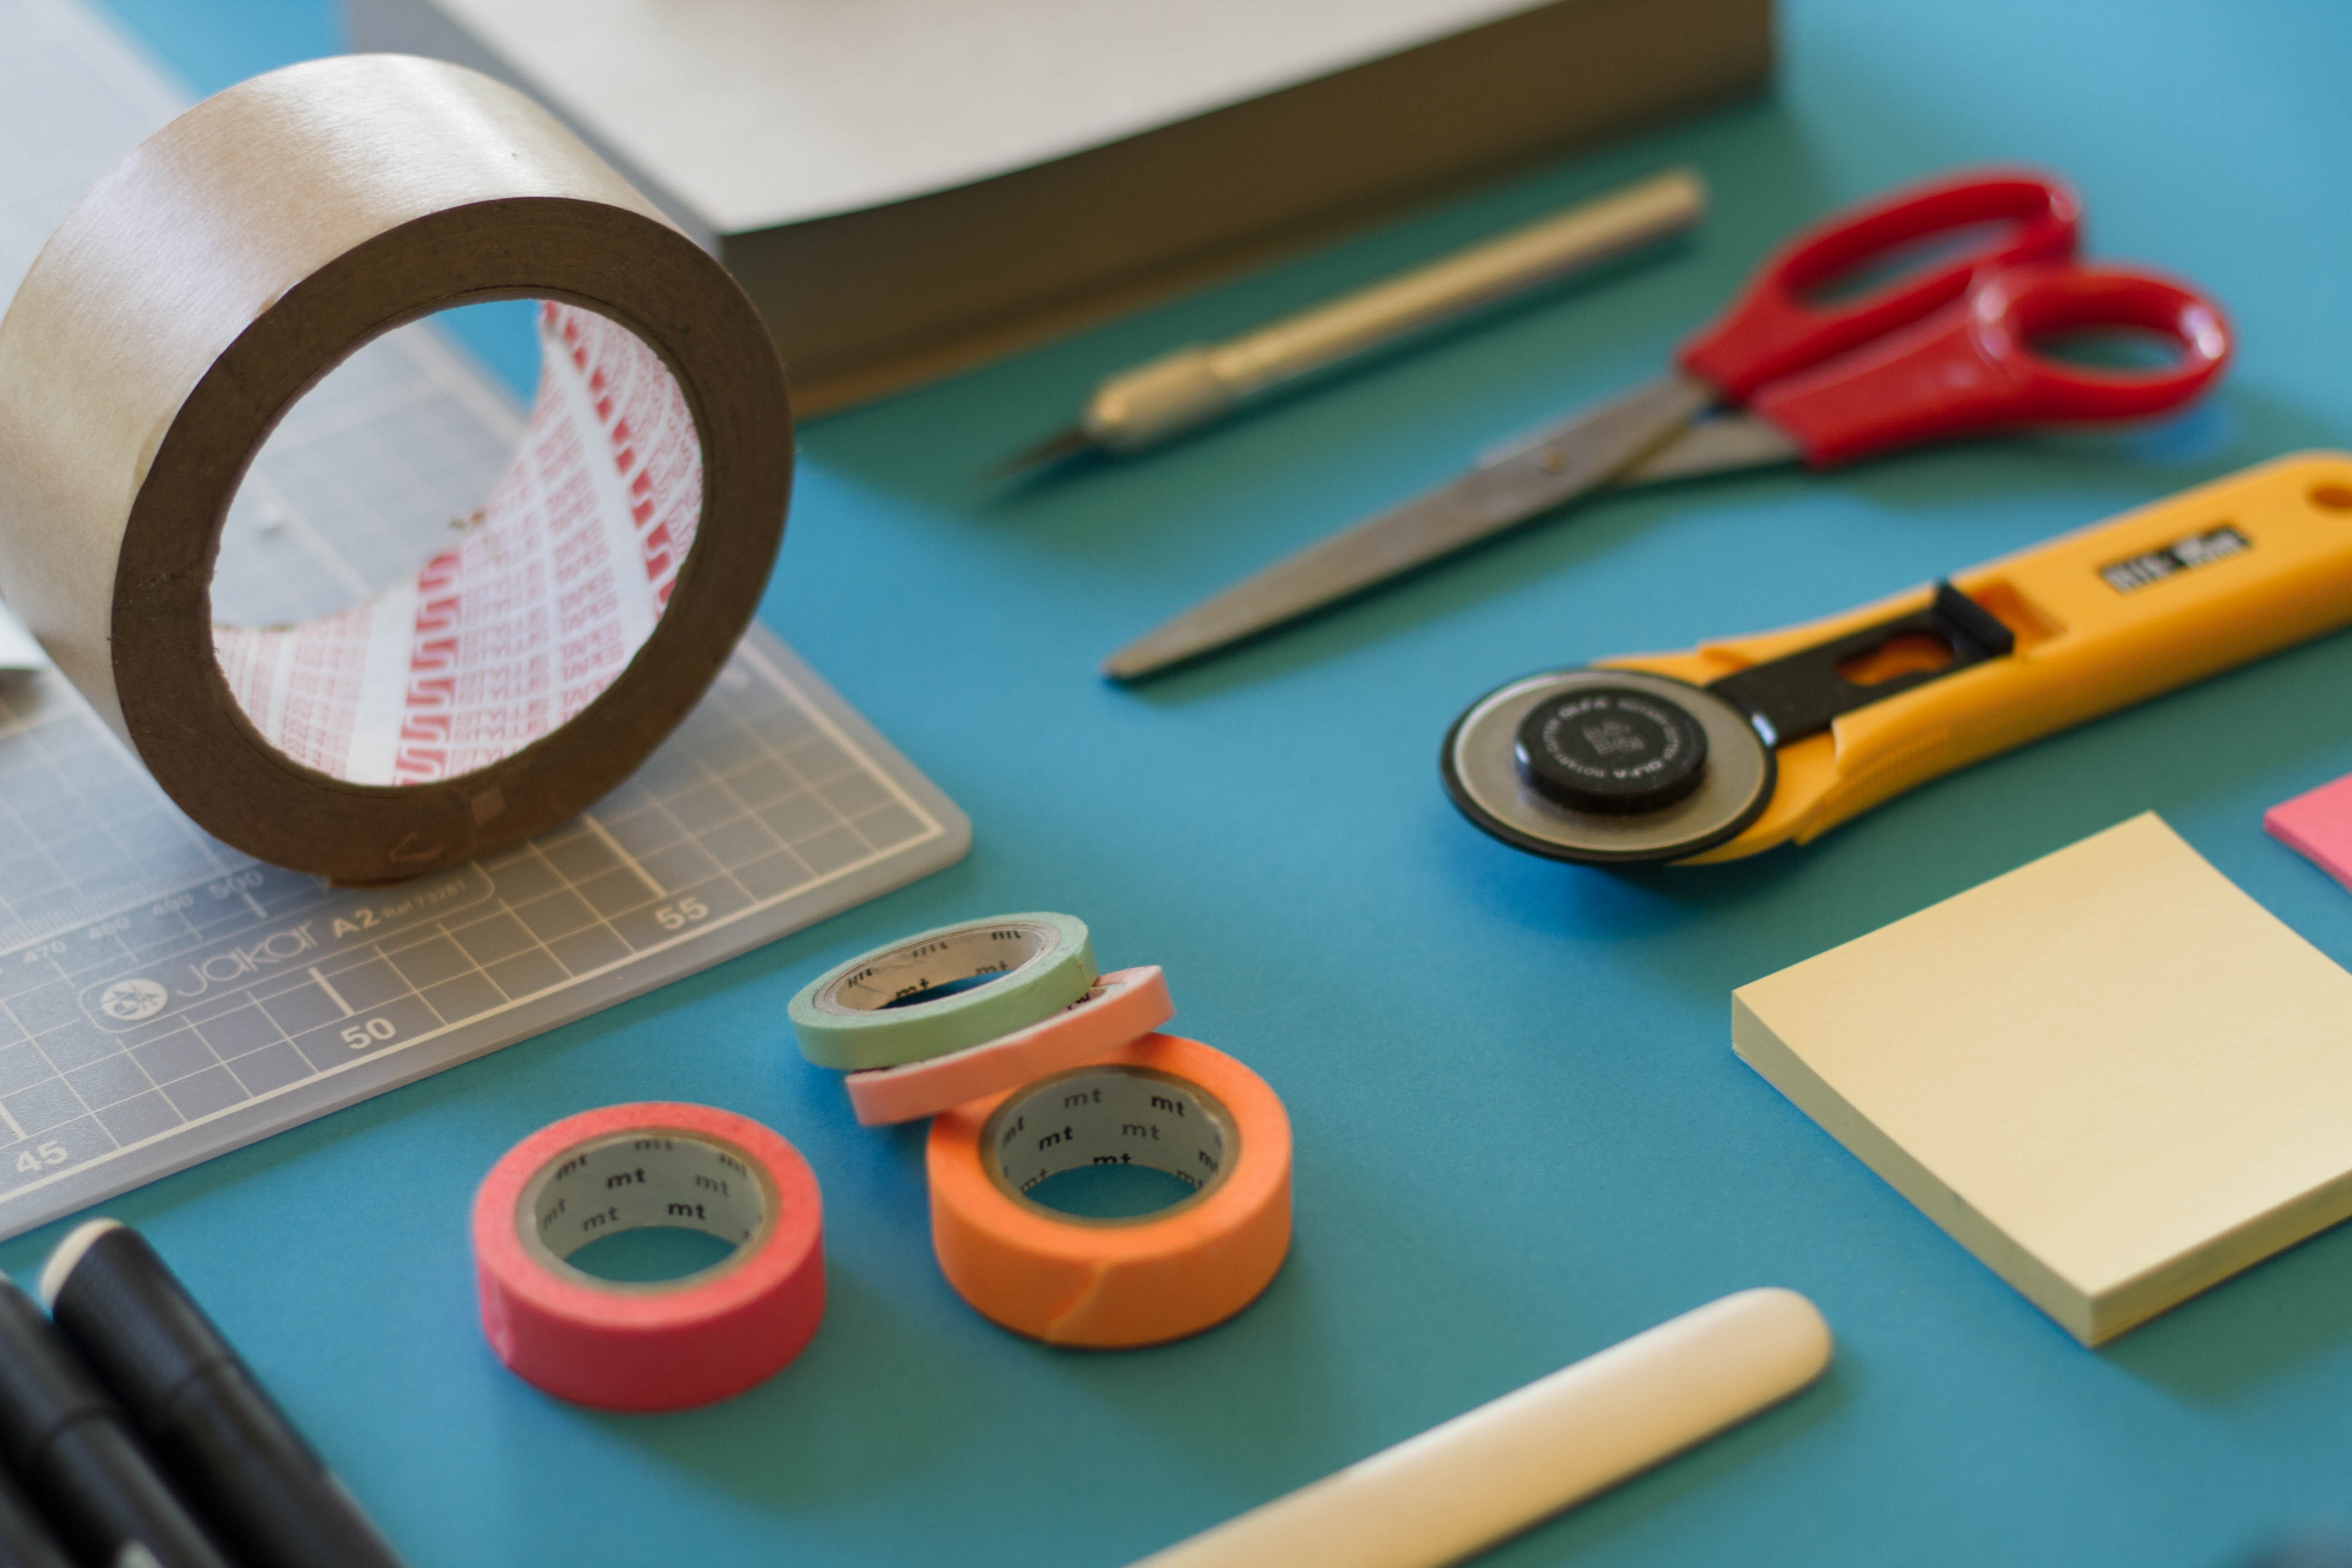 Colorful rolls of scotch tape, scissors and sticky notes on a table